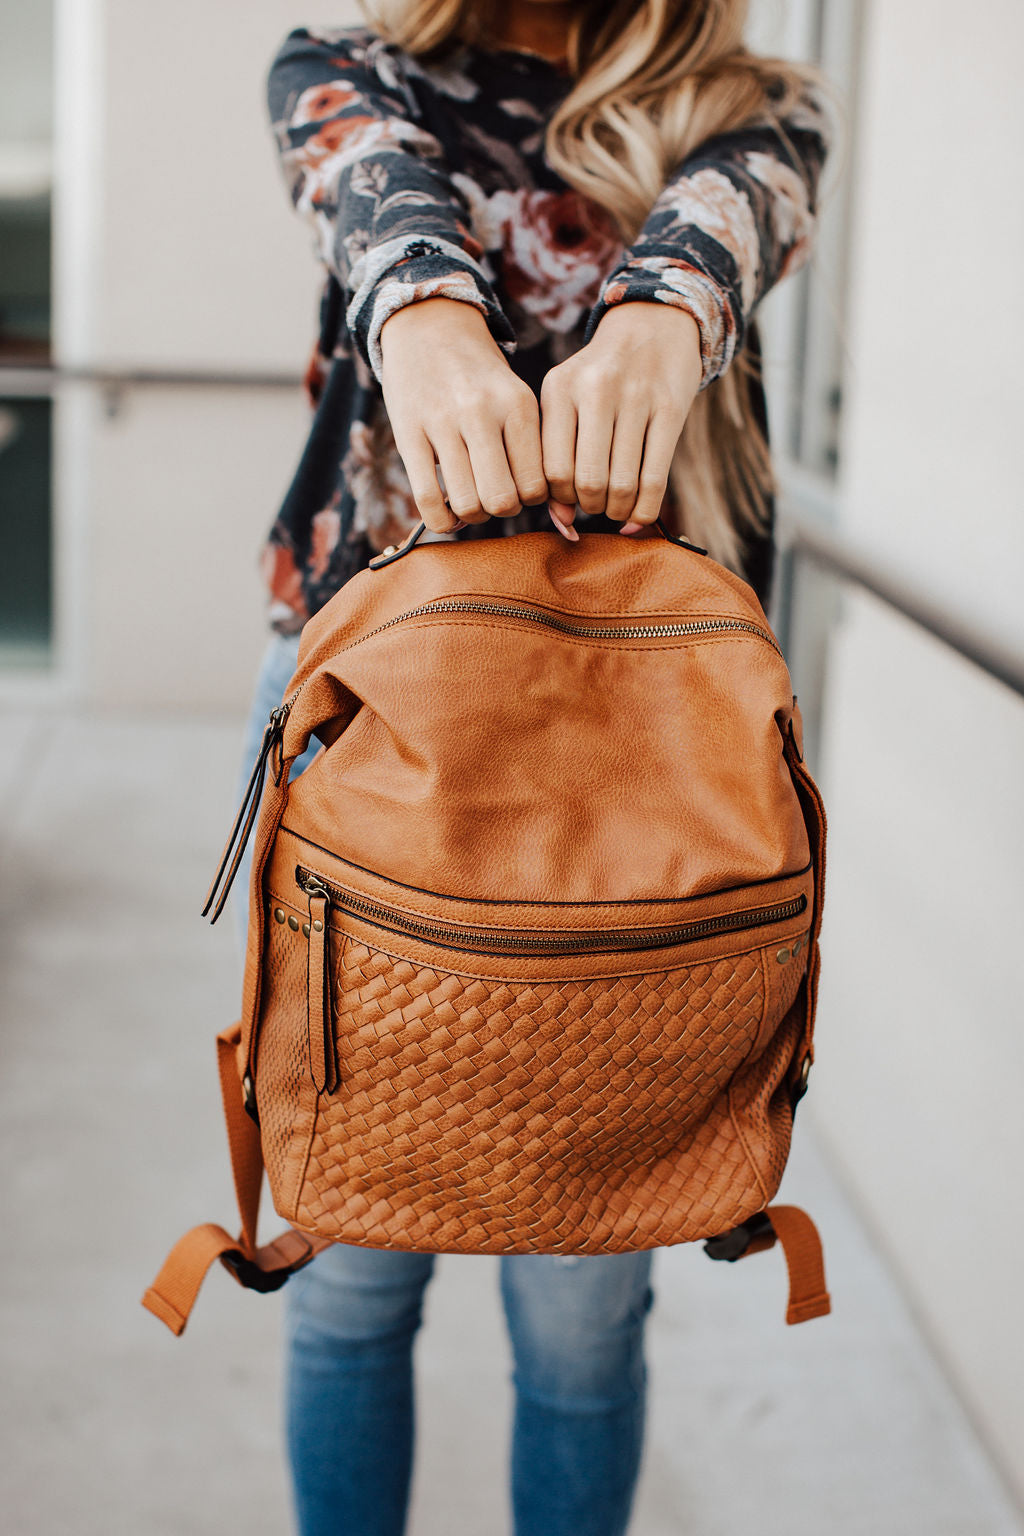 Back & Forth Backpack - Cognac